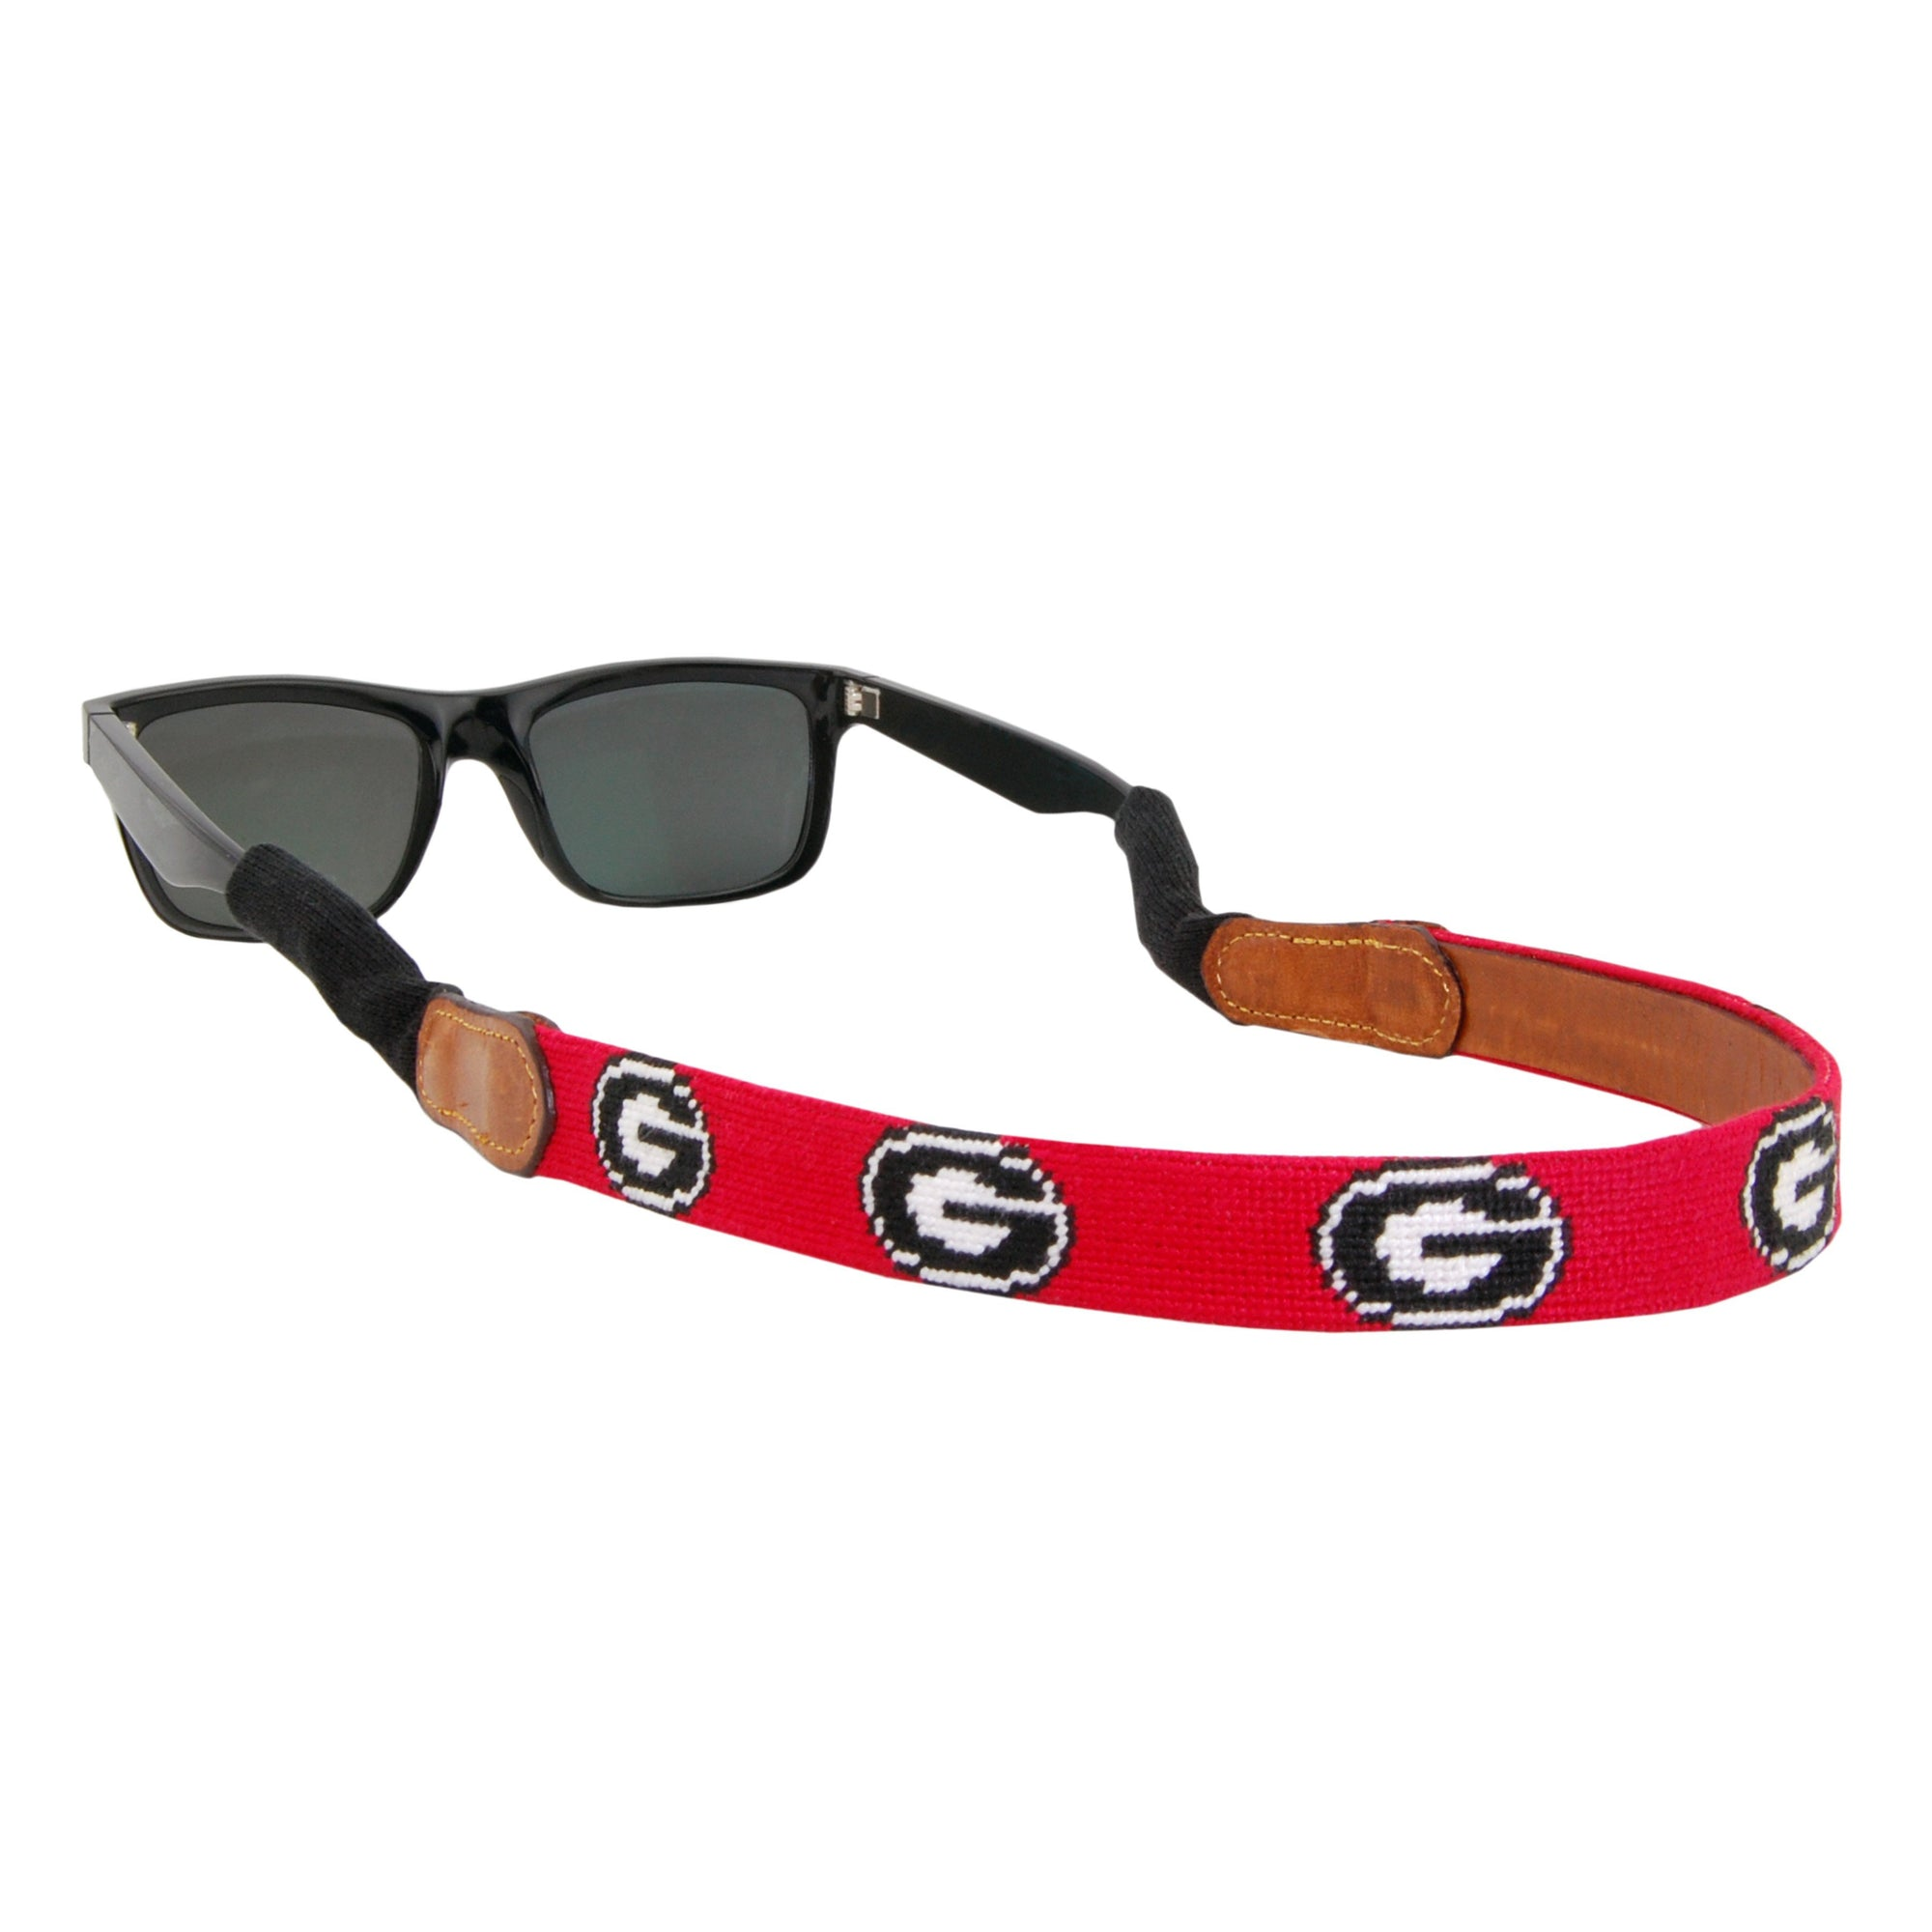 UGA Needlepoint Sunglass Strap - OnwardReserve